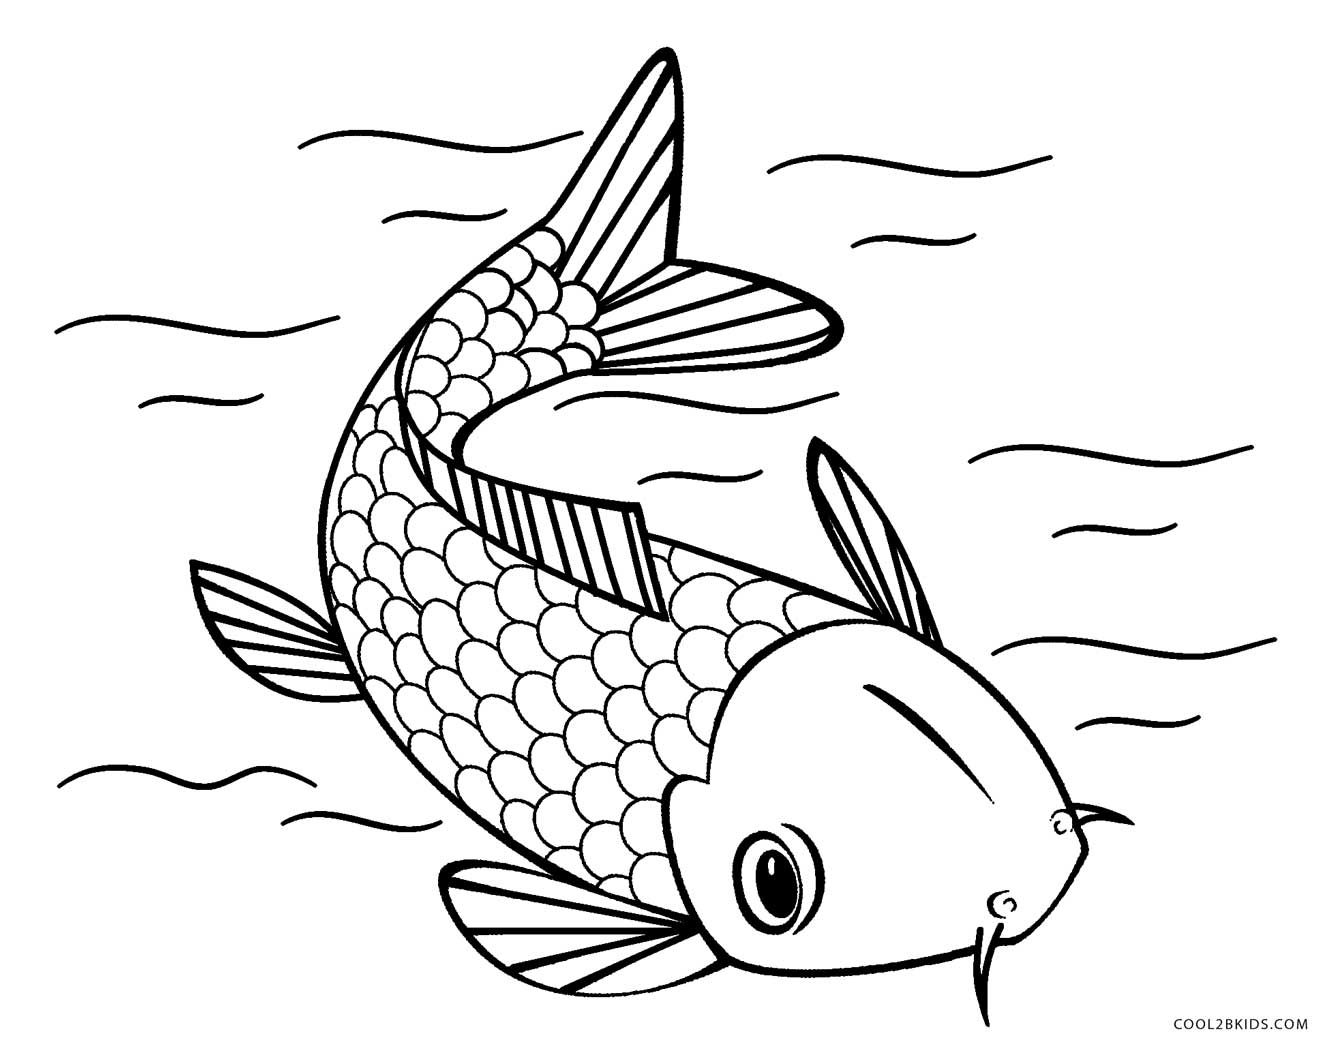 fish color sheet fish coloring pages for kids preschool and kindergarten fish color sheet